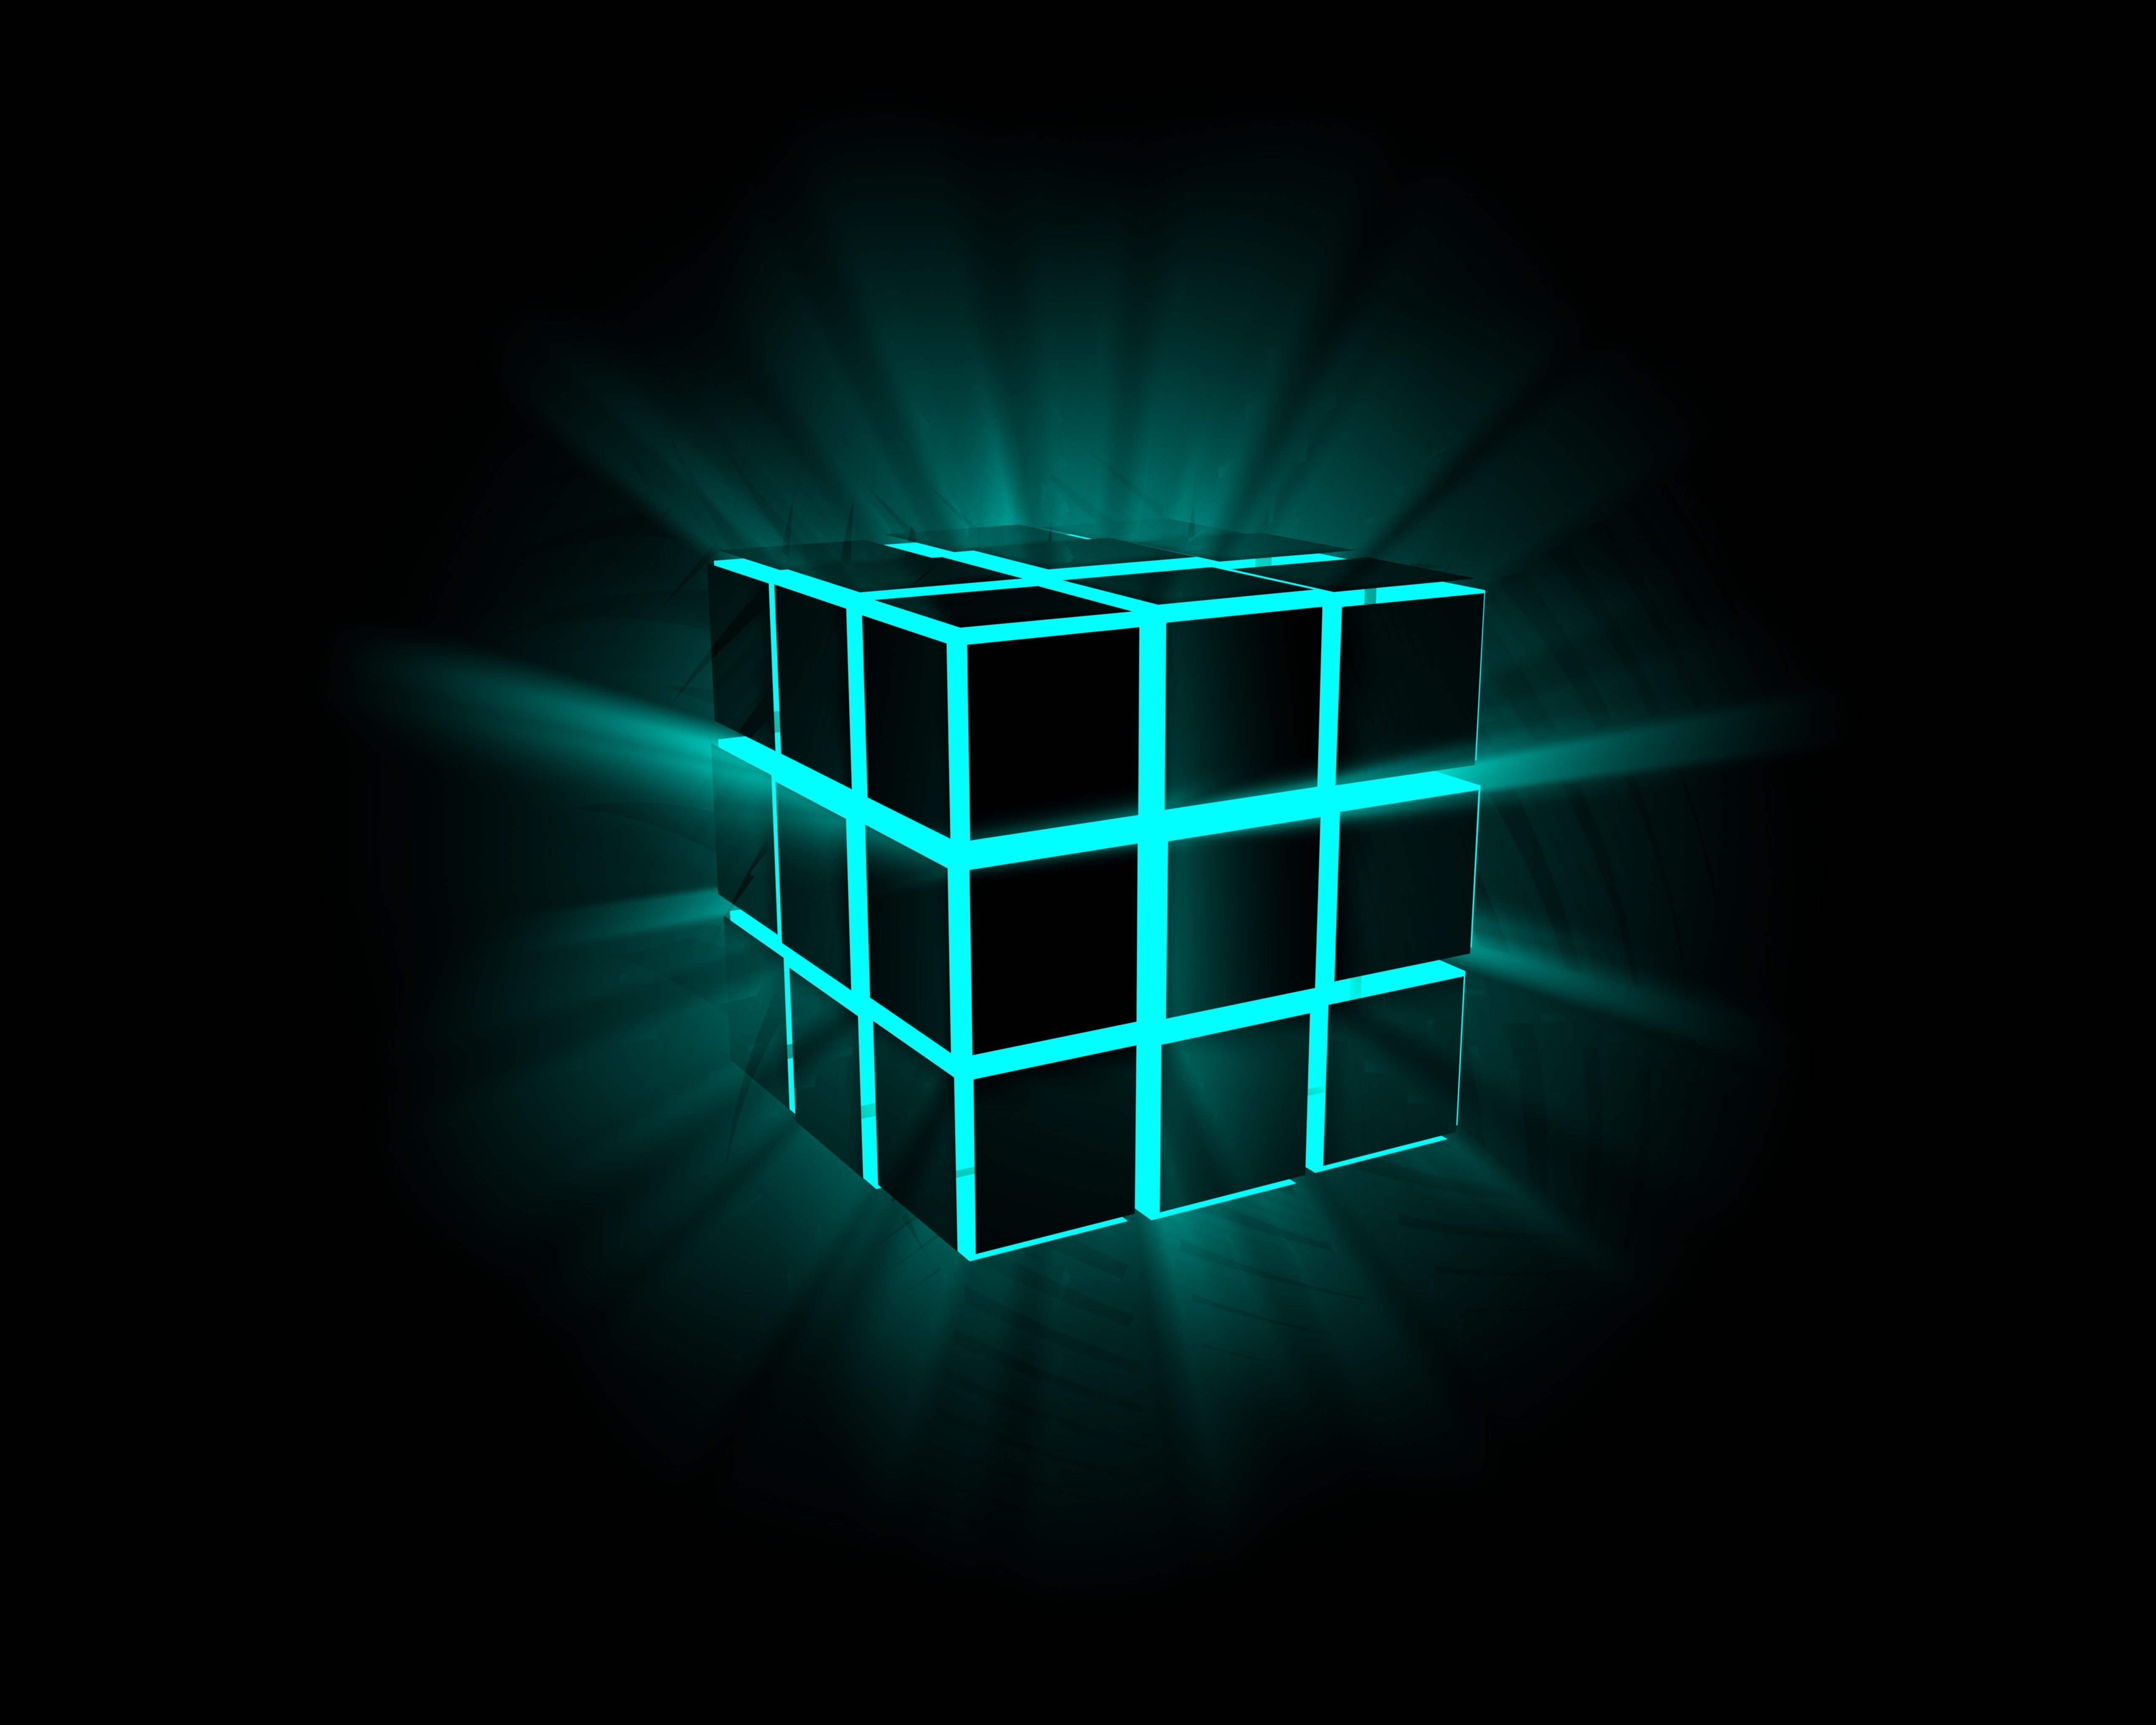 abstract cubes rubiks cube 1048163 5120x4096